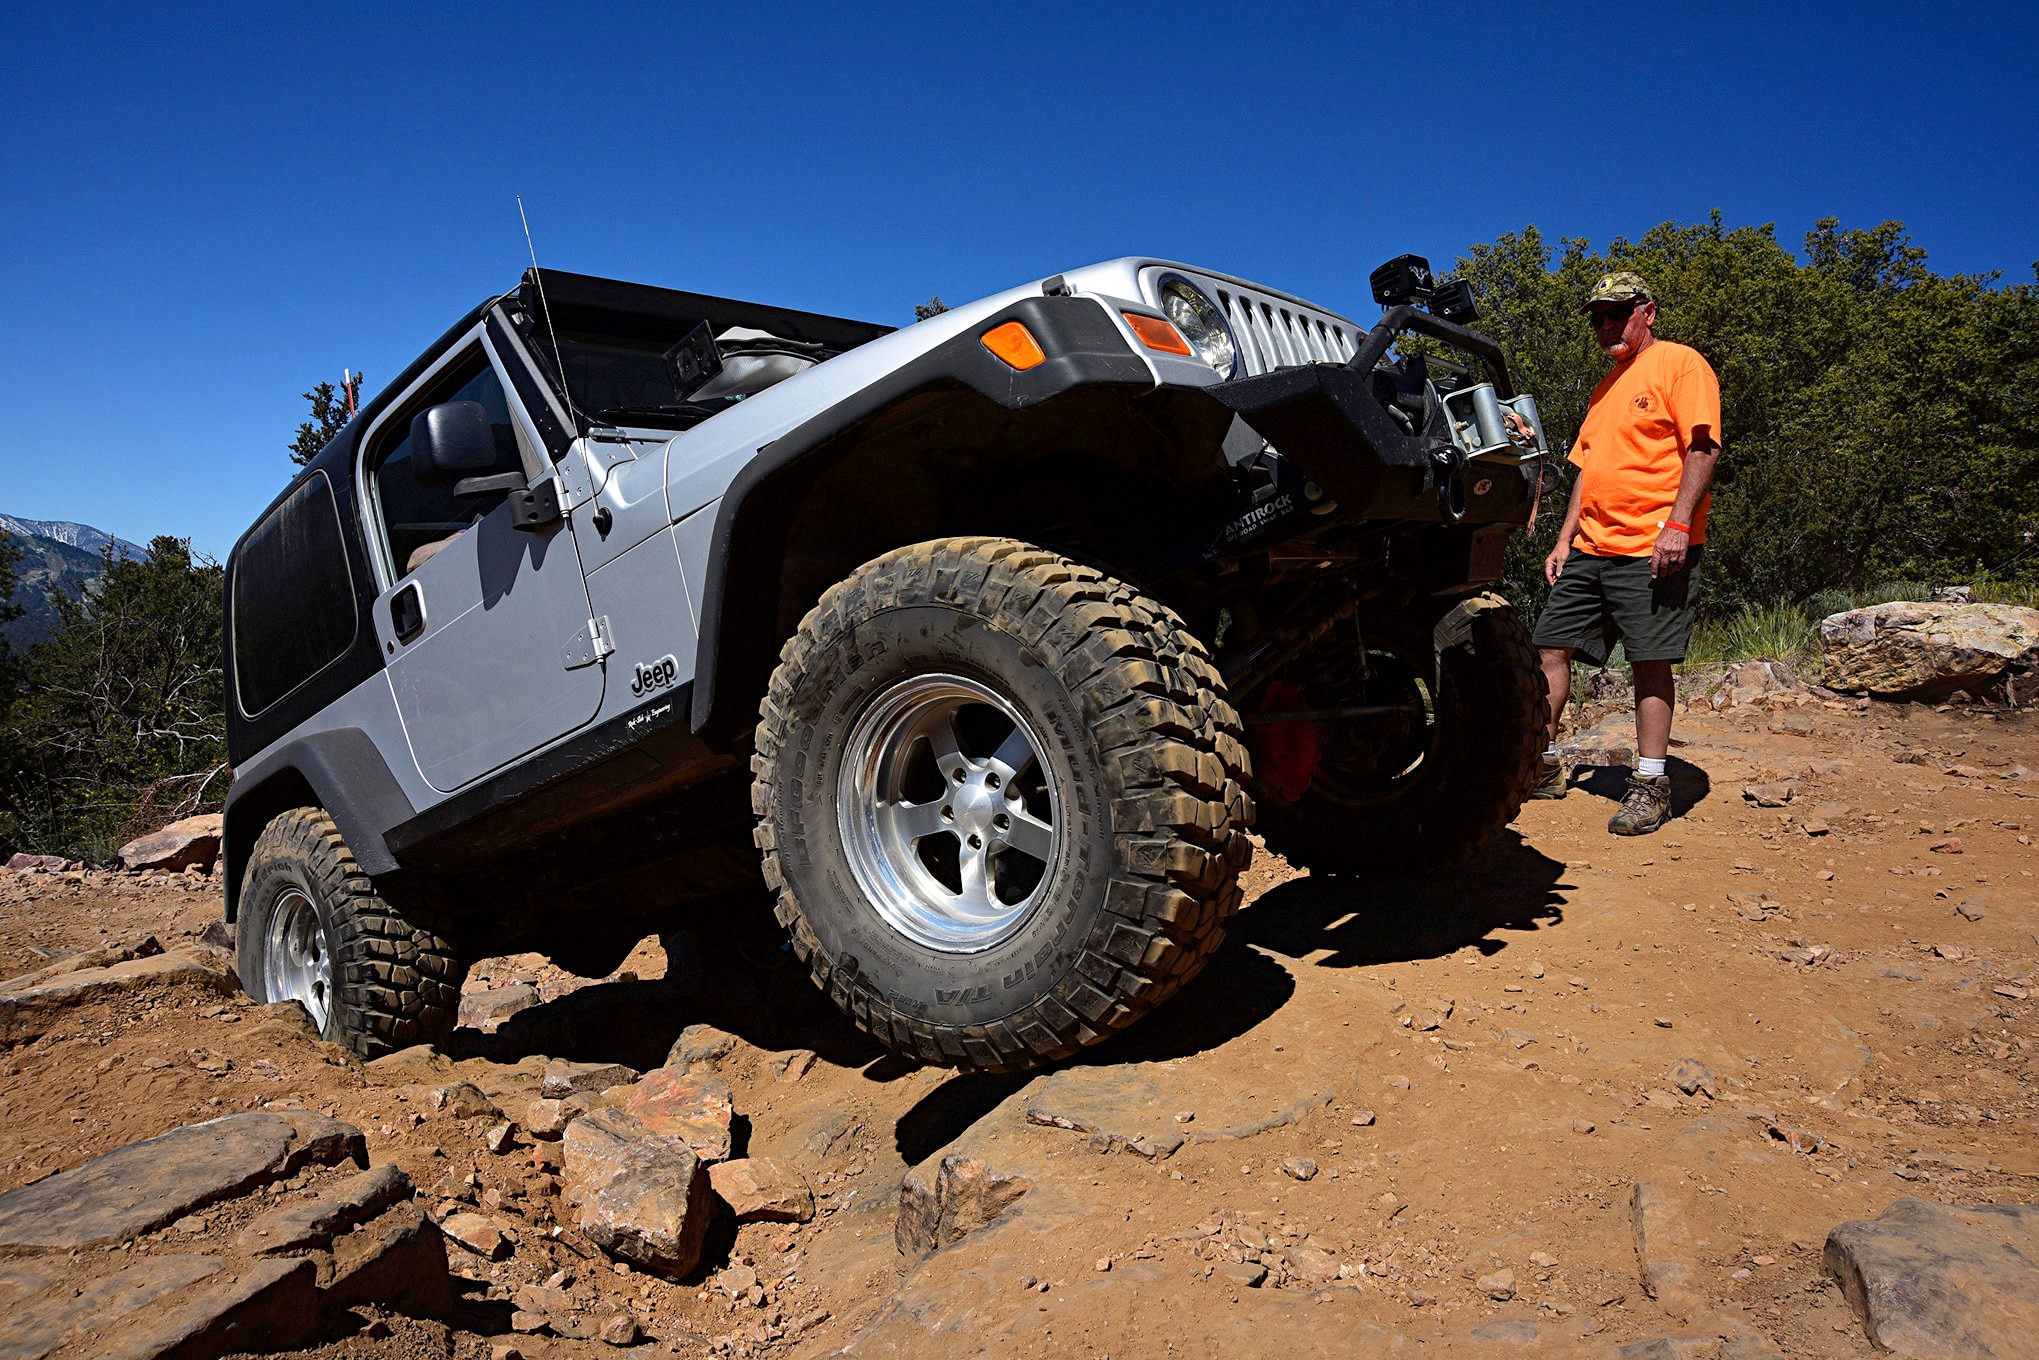 023 jeep event big bear forest fest 2019 inland empire